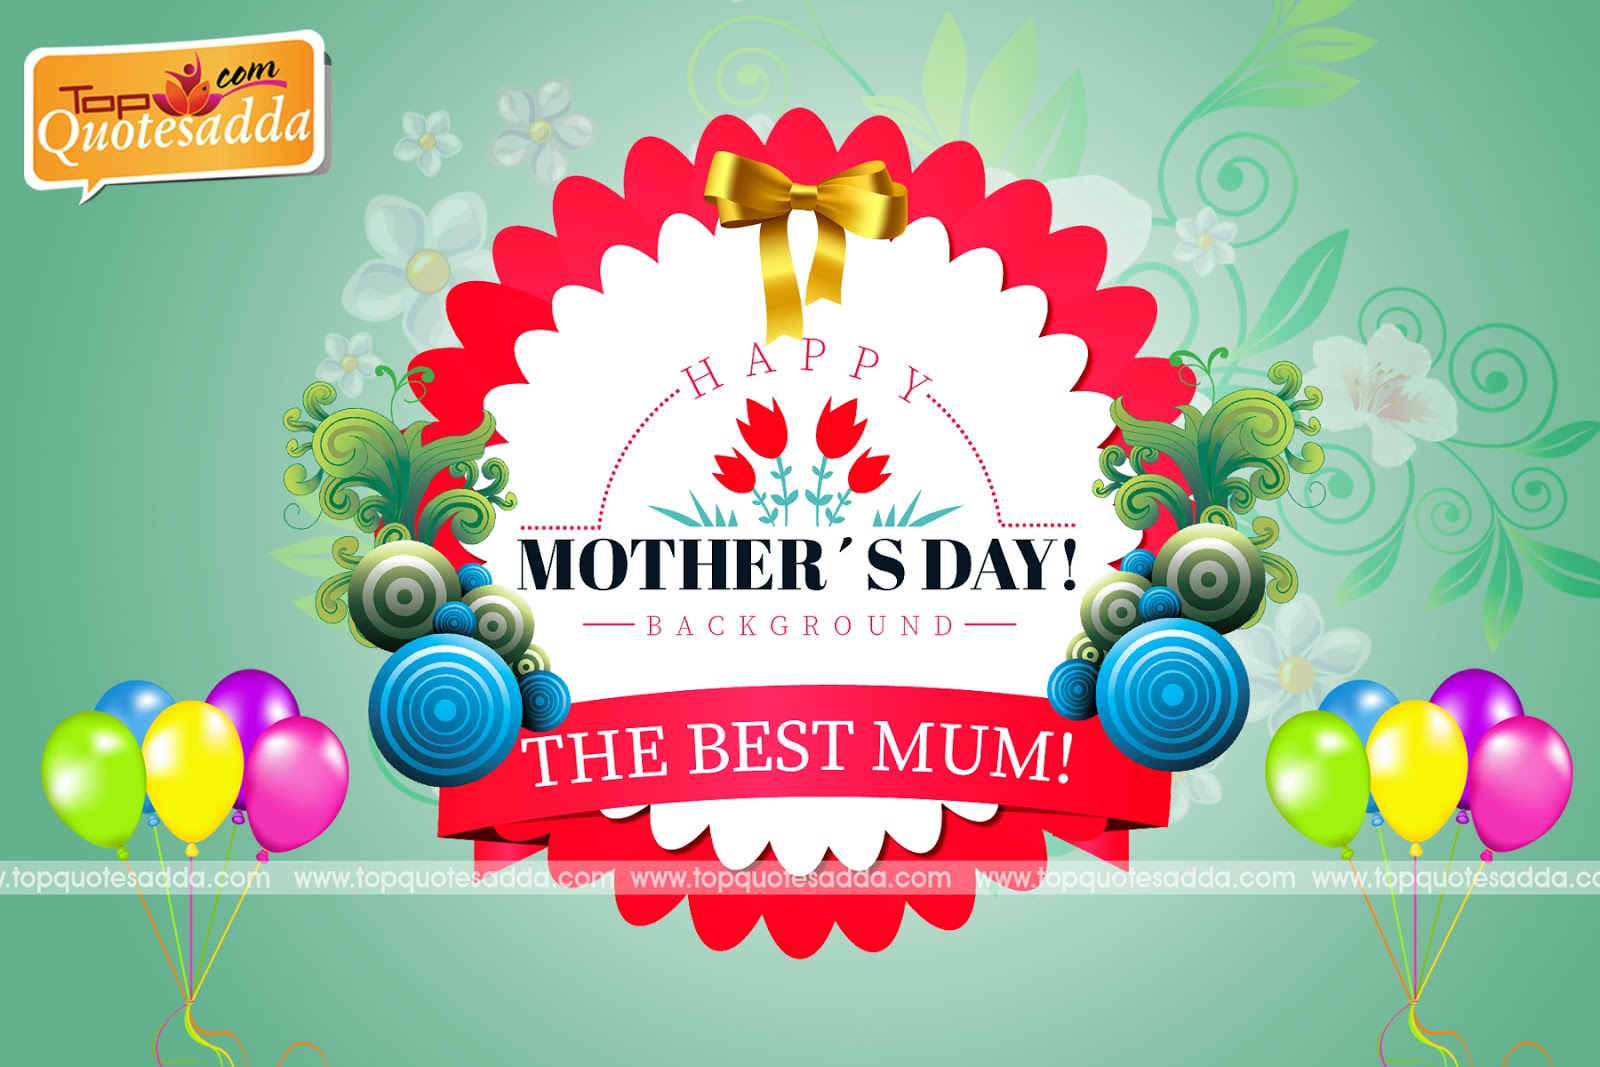 Nice Saying Mothers Day New Quotes And Greetings Topquotesadda